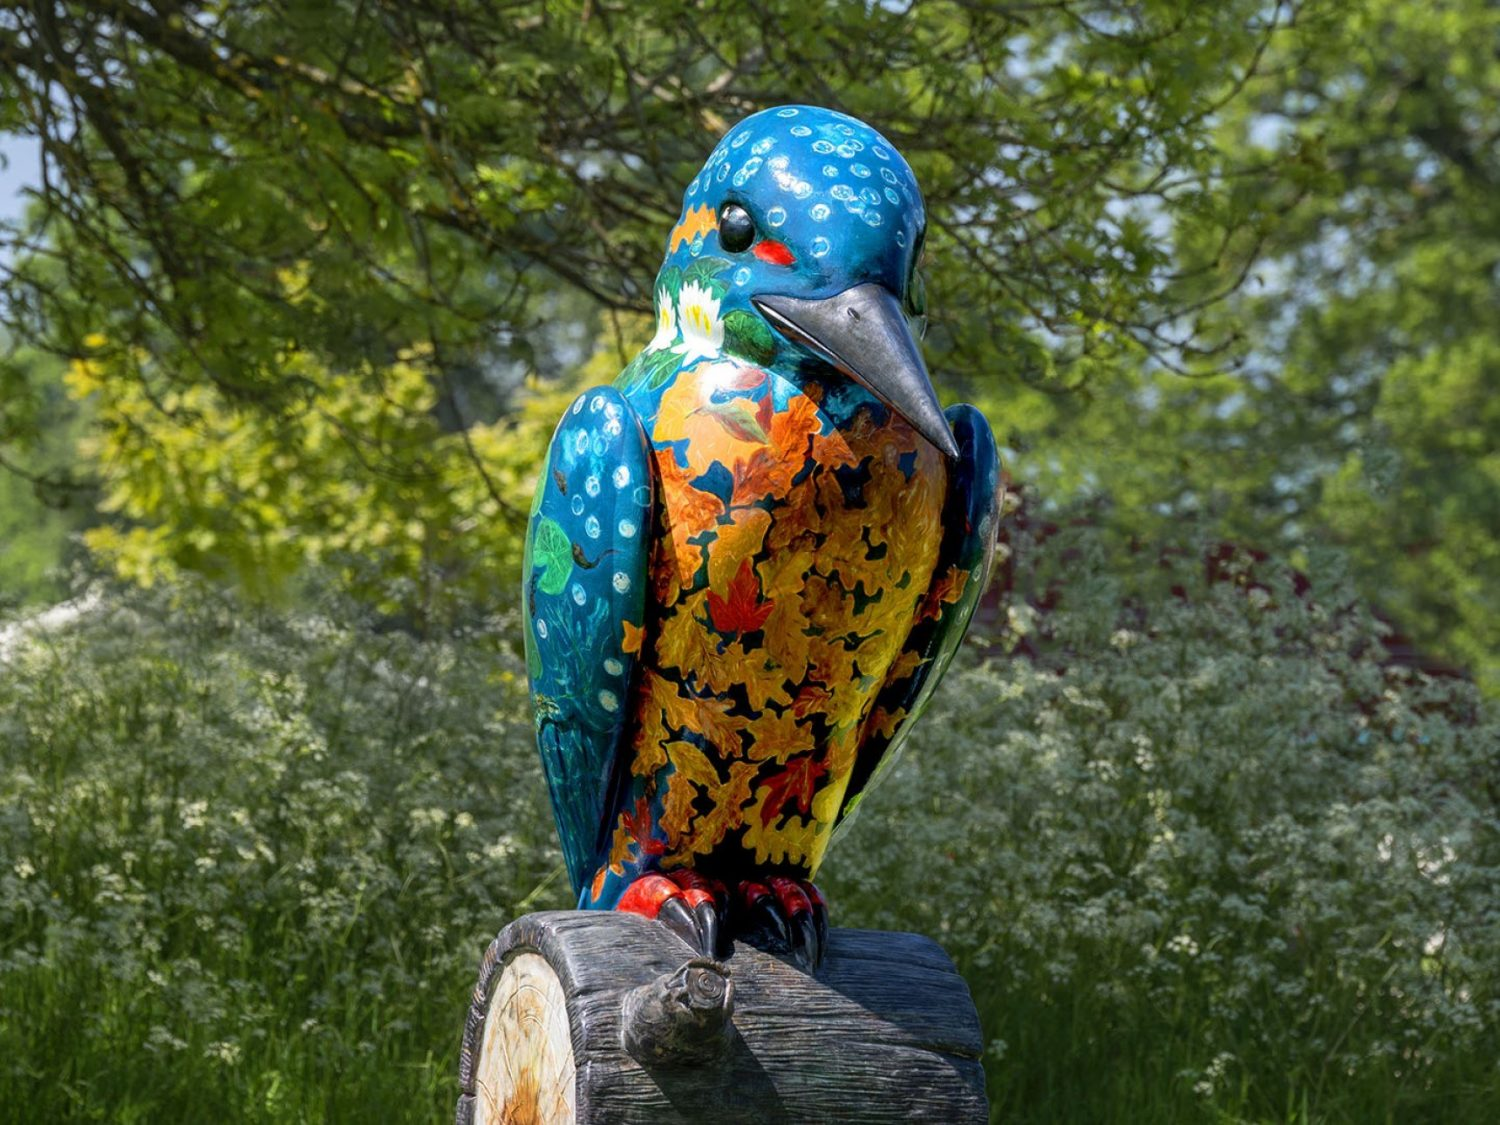 Kingfisher Sculpture at Sudeley Castle